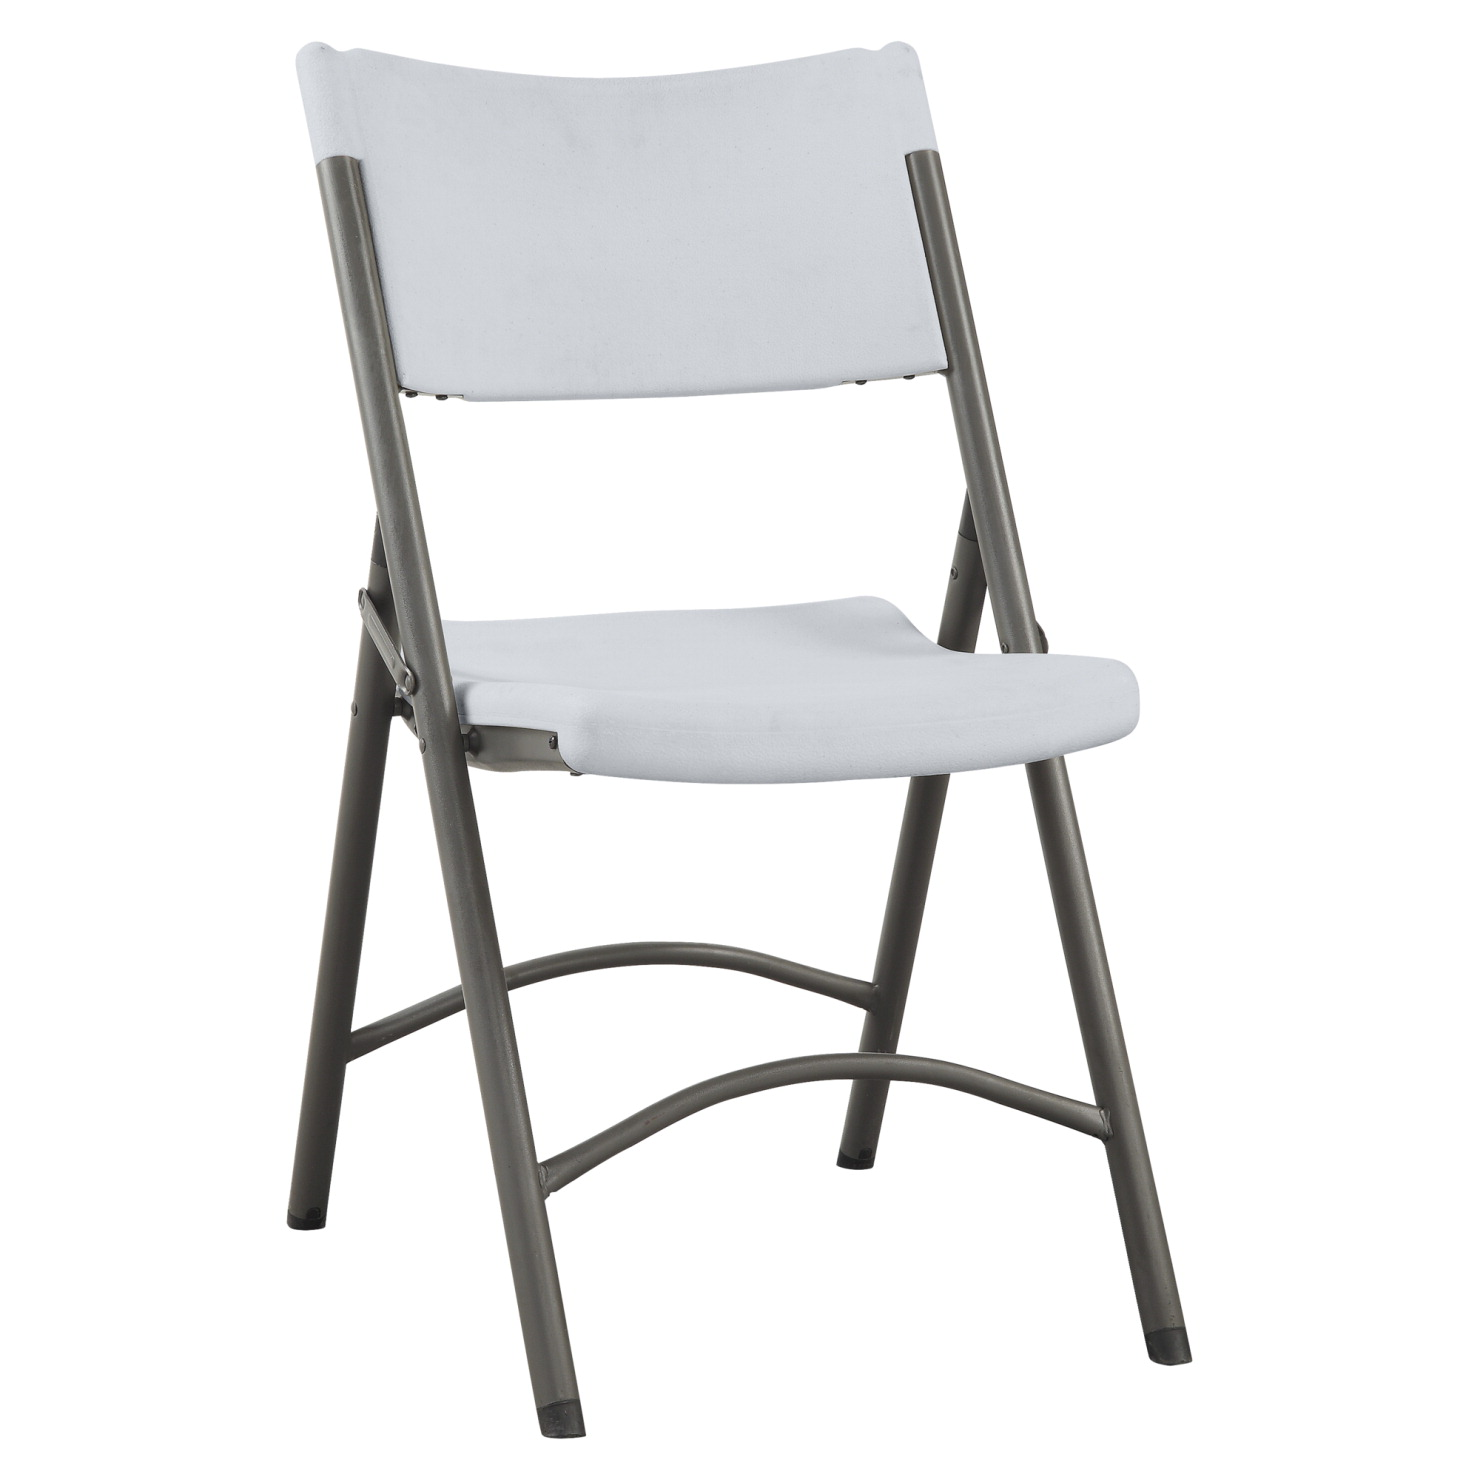 Lorell Folding Chair, 18-1/2 x 21-7/8 x 33-1/8 Inches, Platinum, Count of 4